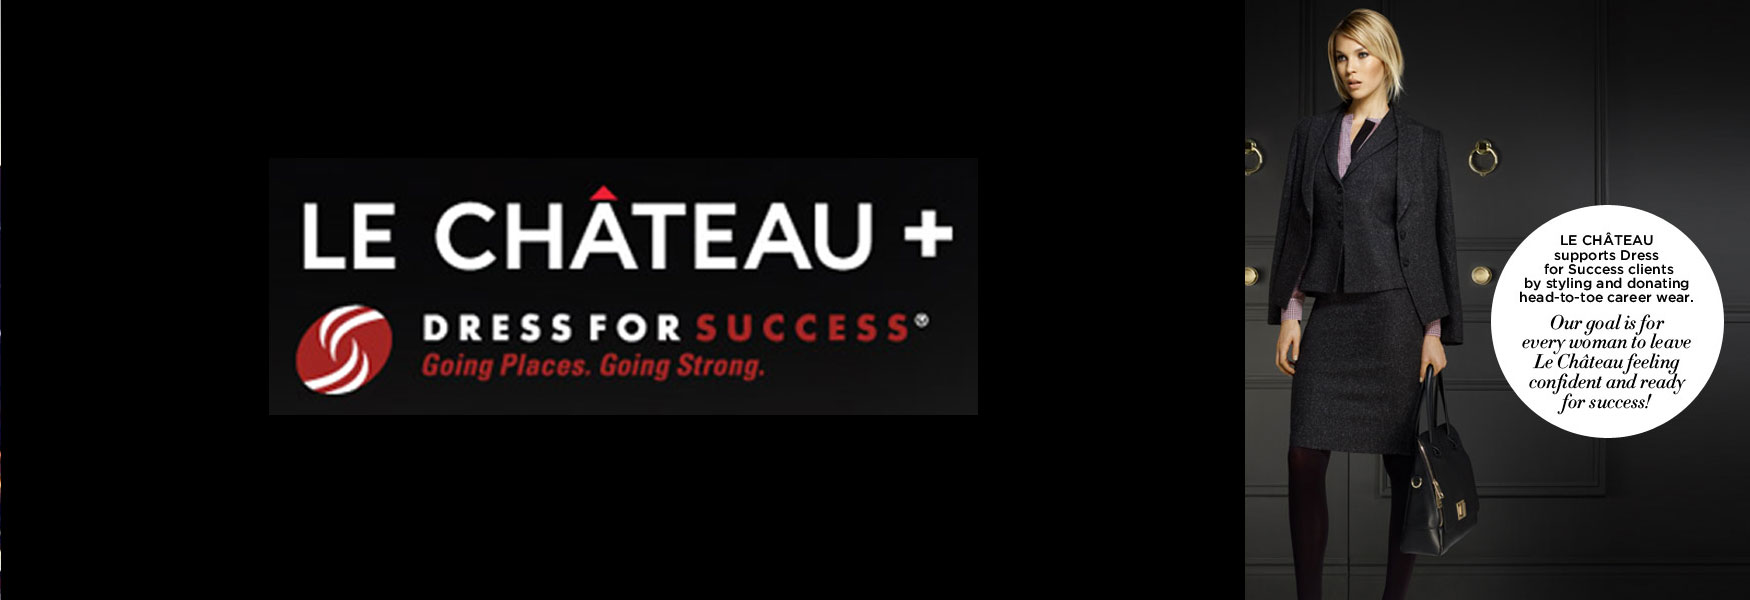 le news le ch acirc teau launches dress for success program le le news le chacircteau launches dress for success program le chateau blog